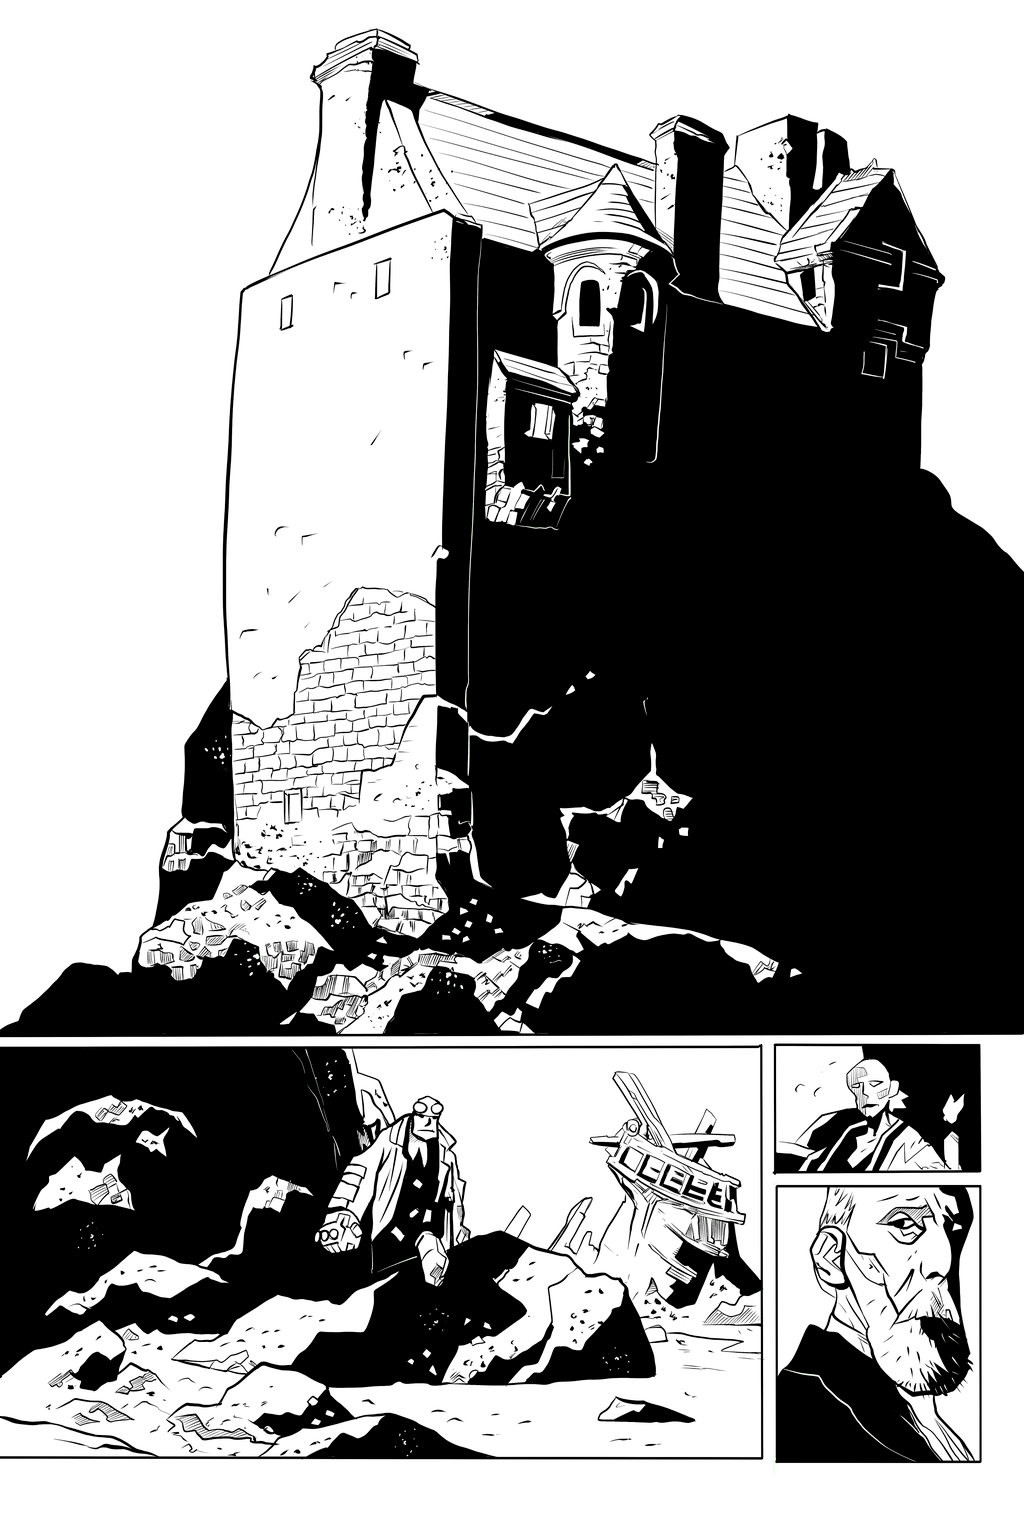 Hell Boy - The Island Sample Page 1 of 5